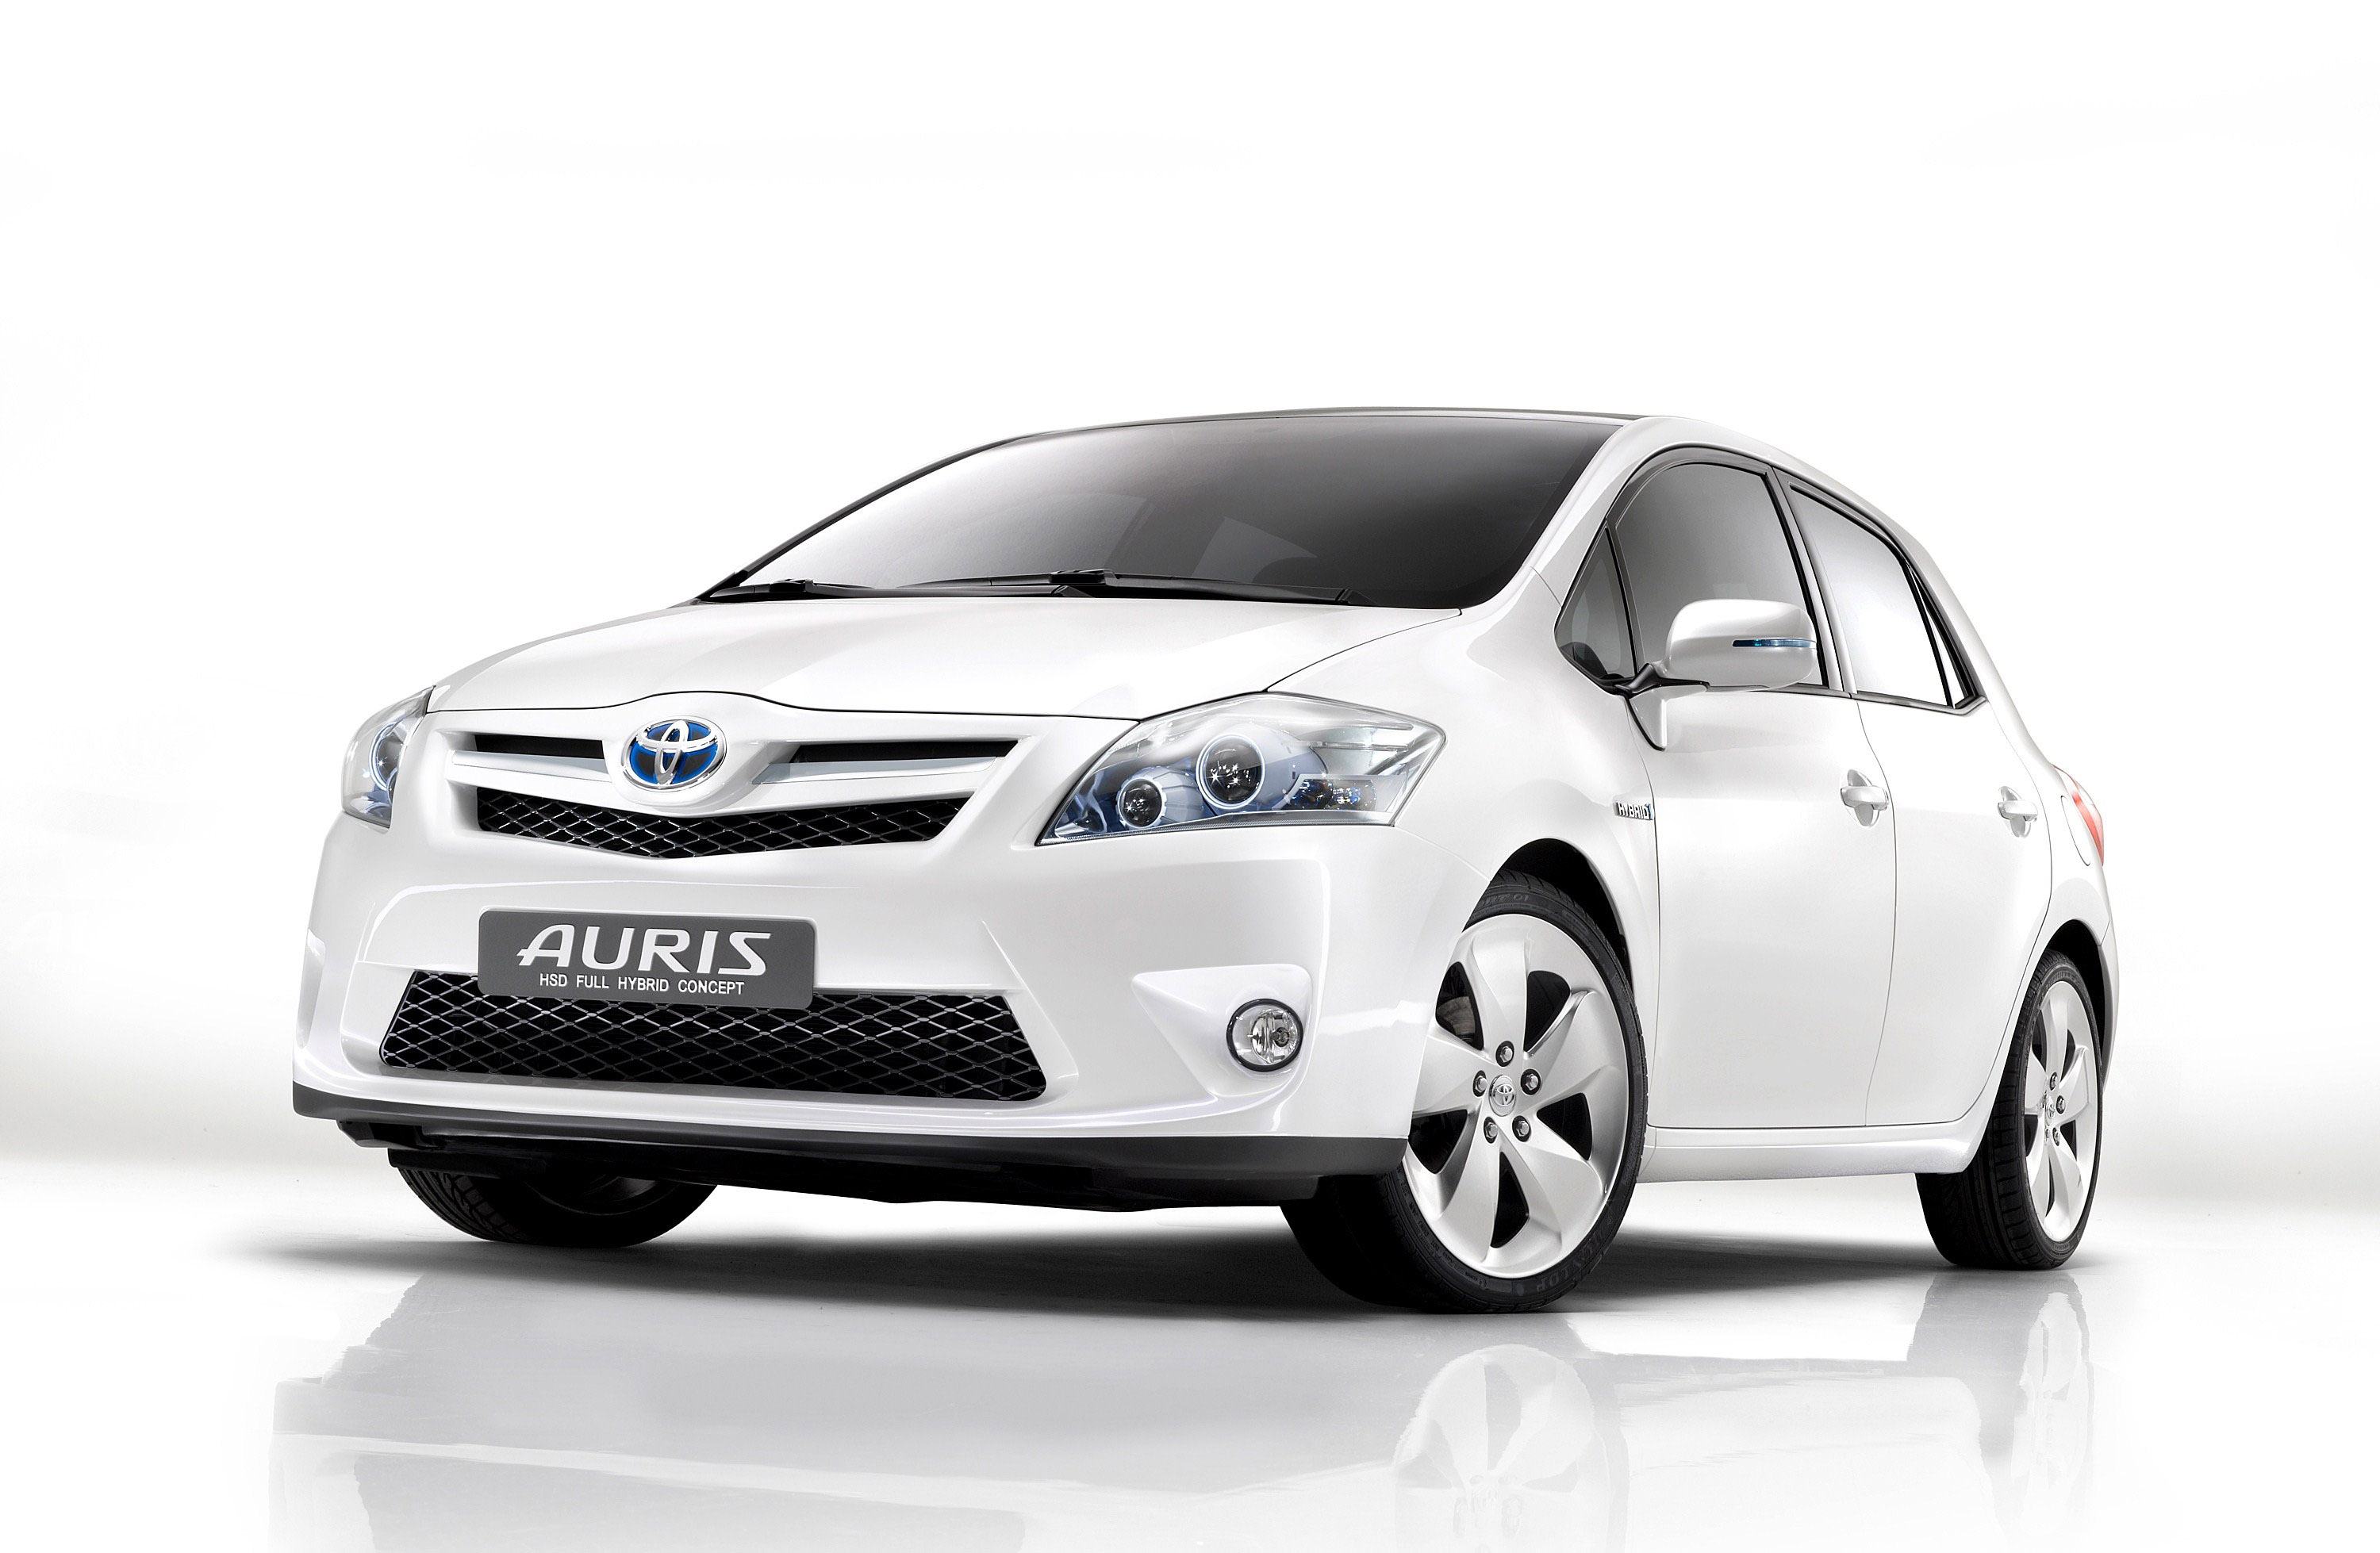 toyota auris hsd full hybrid concept. Black Bedroom Furniture Sets. Home Design Ideas